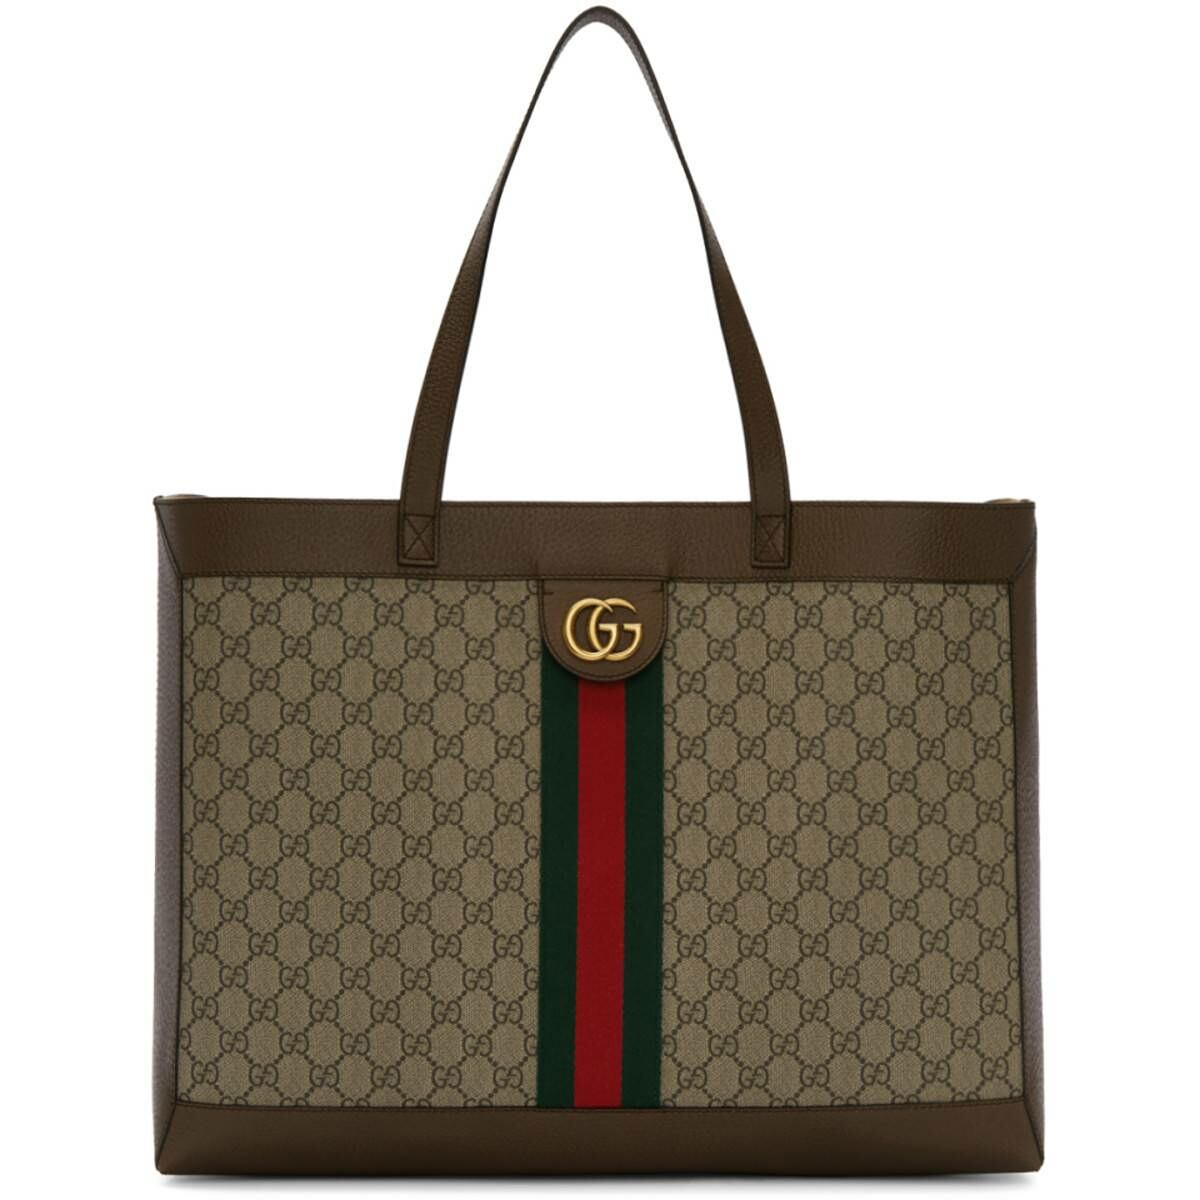 Gucci Brown and Beige GG Ophidia Tote Ssense USA WOMEN Women ACCESSORIES Womens BAGS